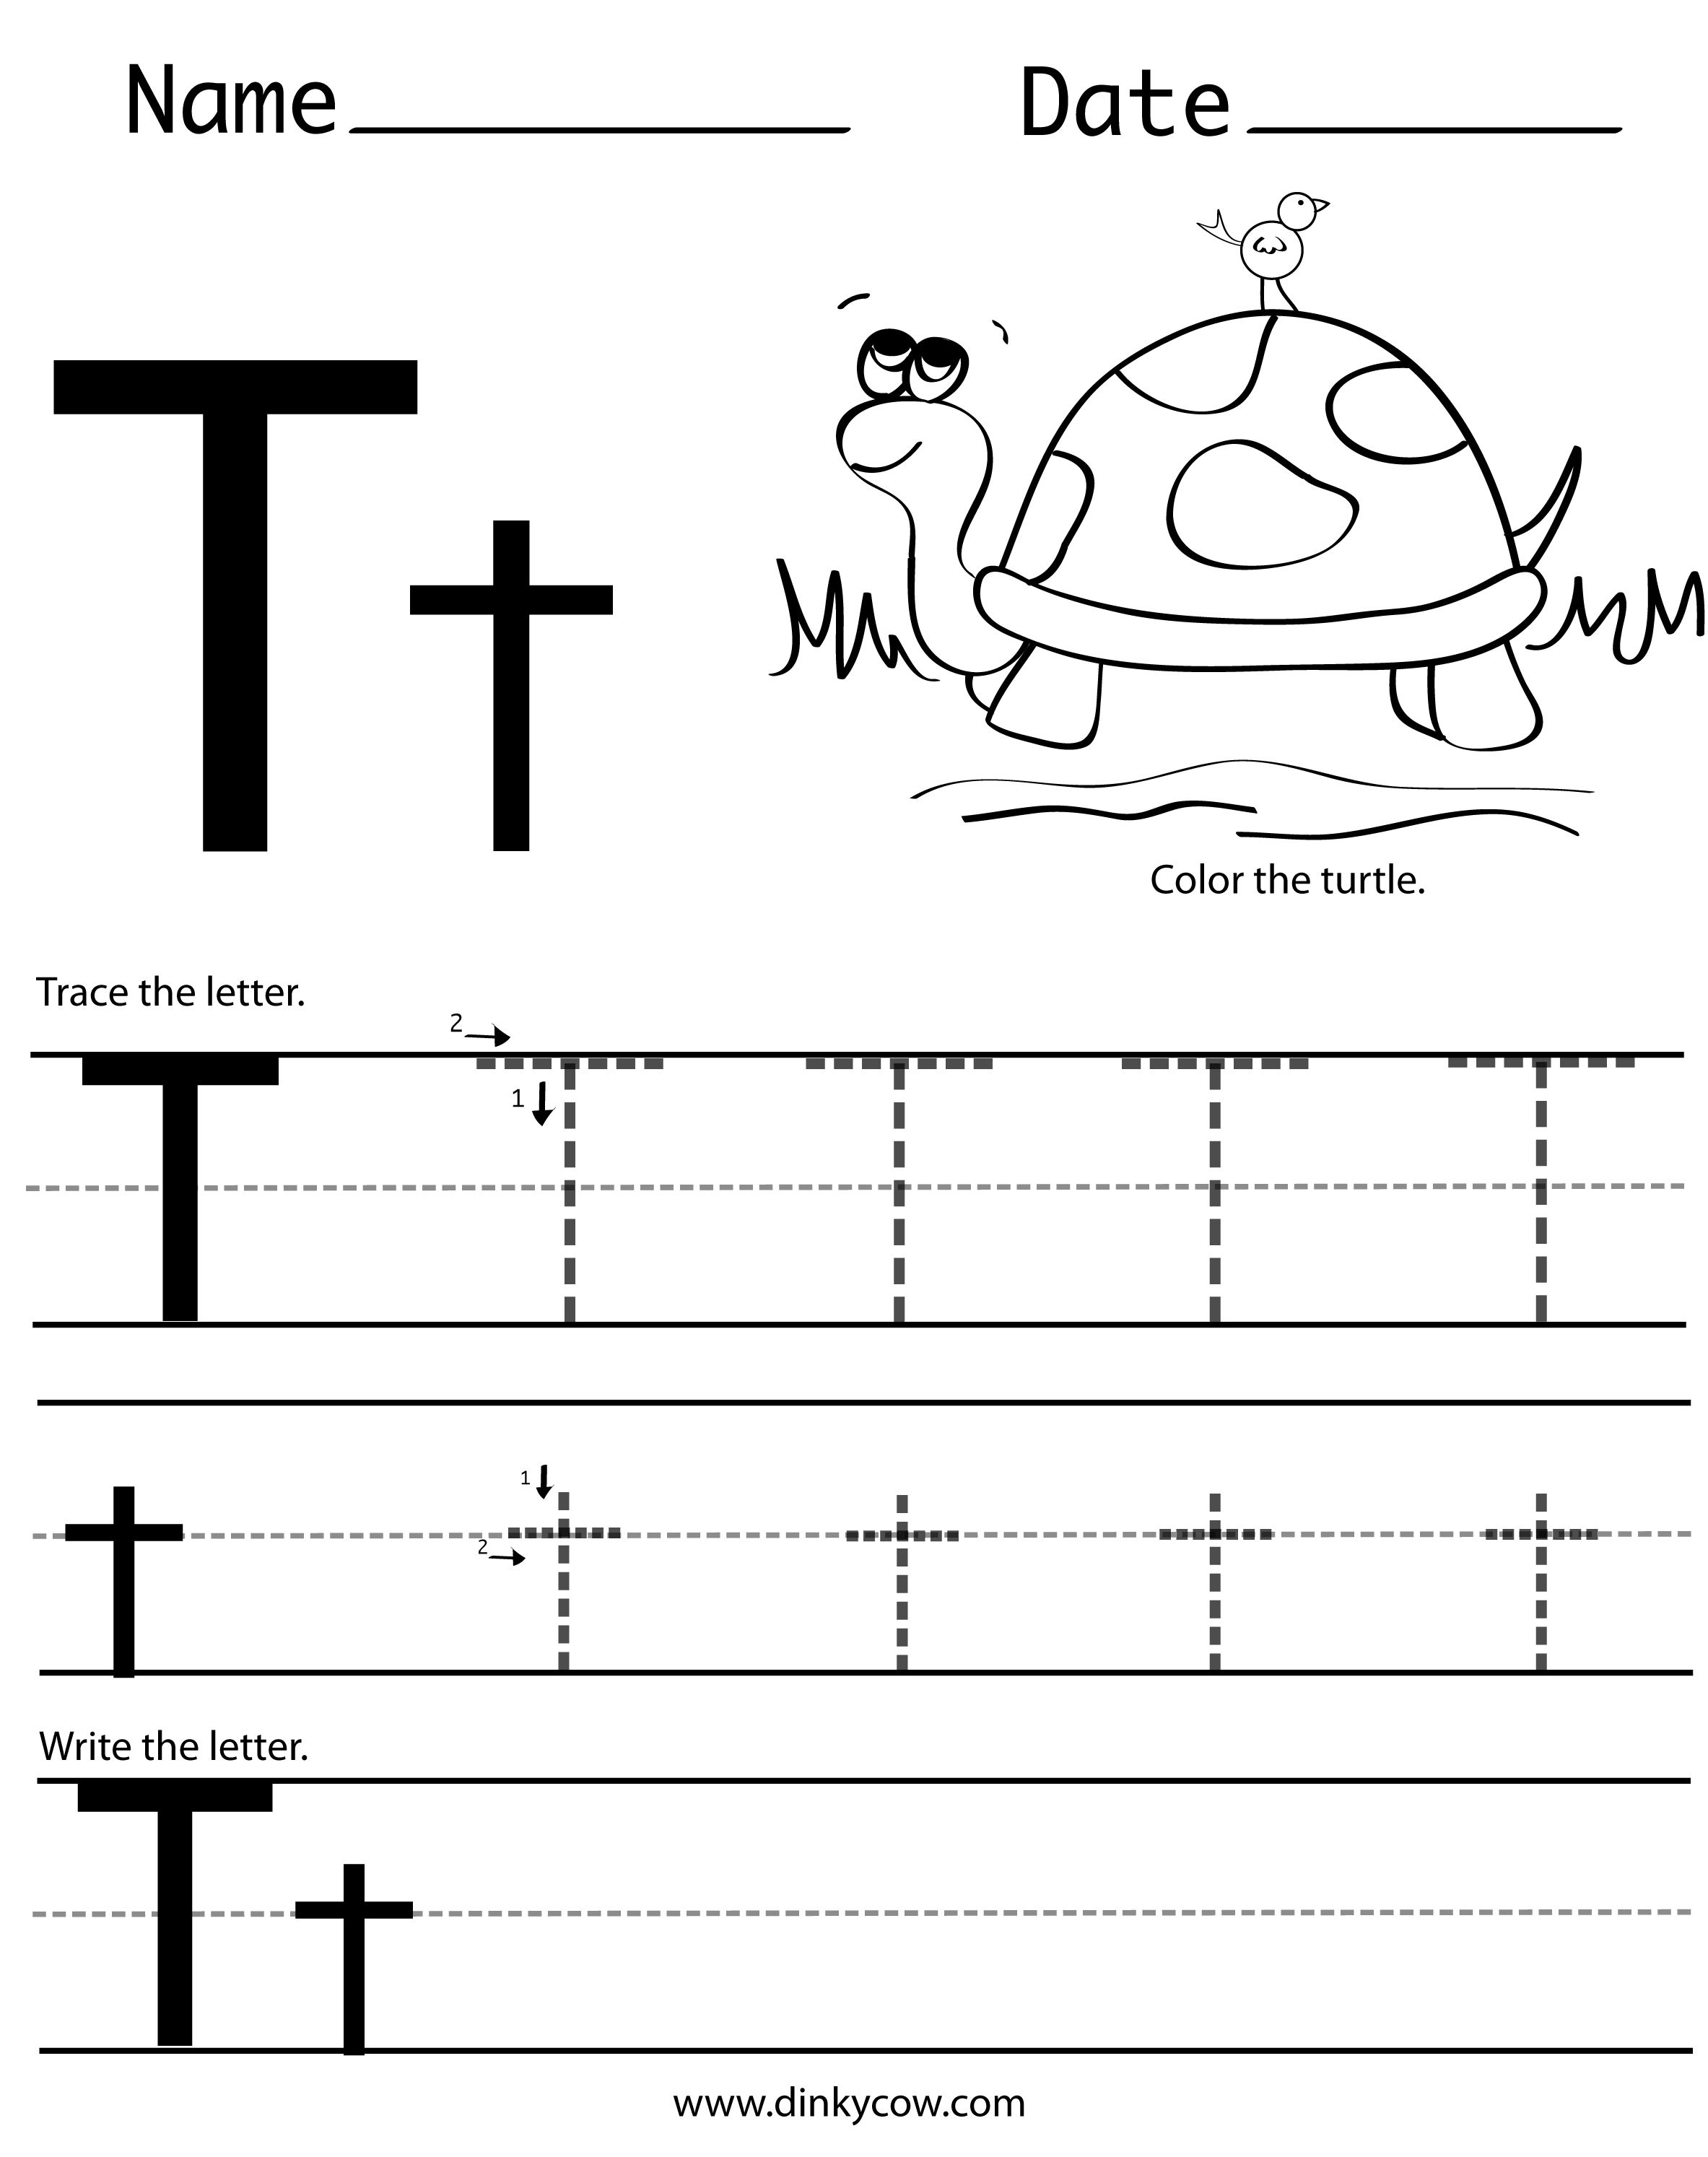 T Free Handwriting Worksheet Print 2 366 2 988 Pixels